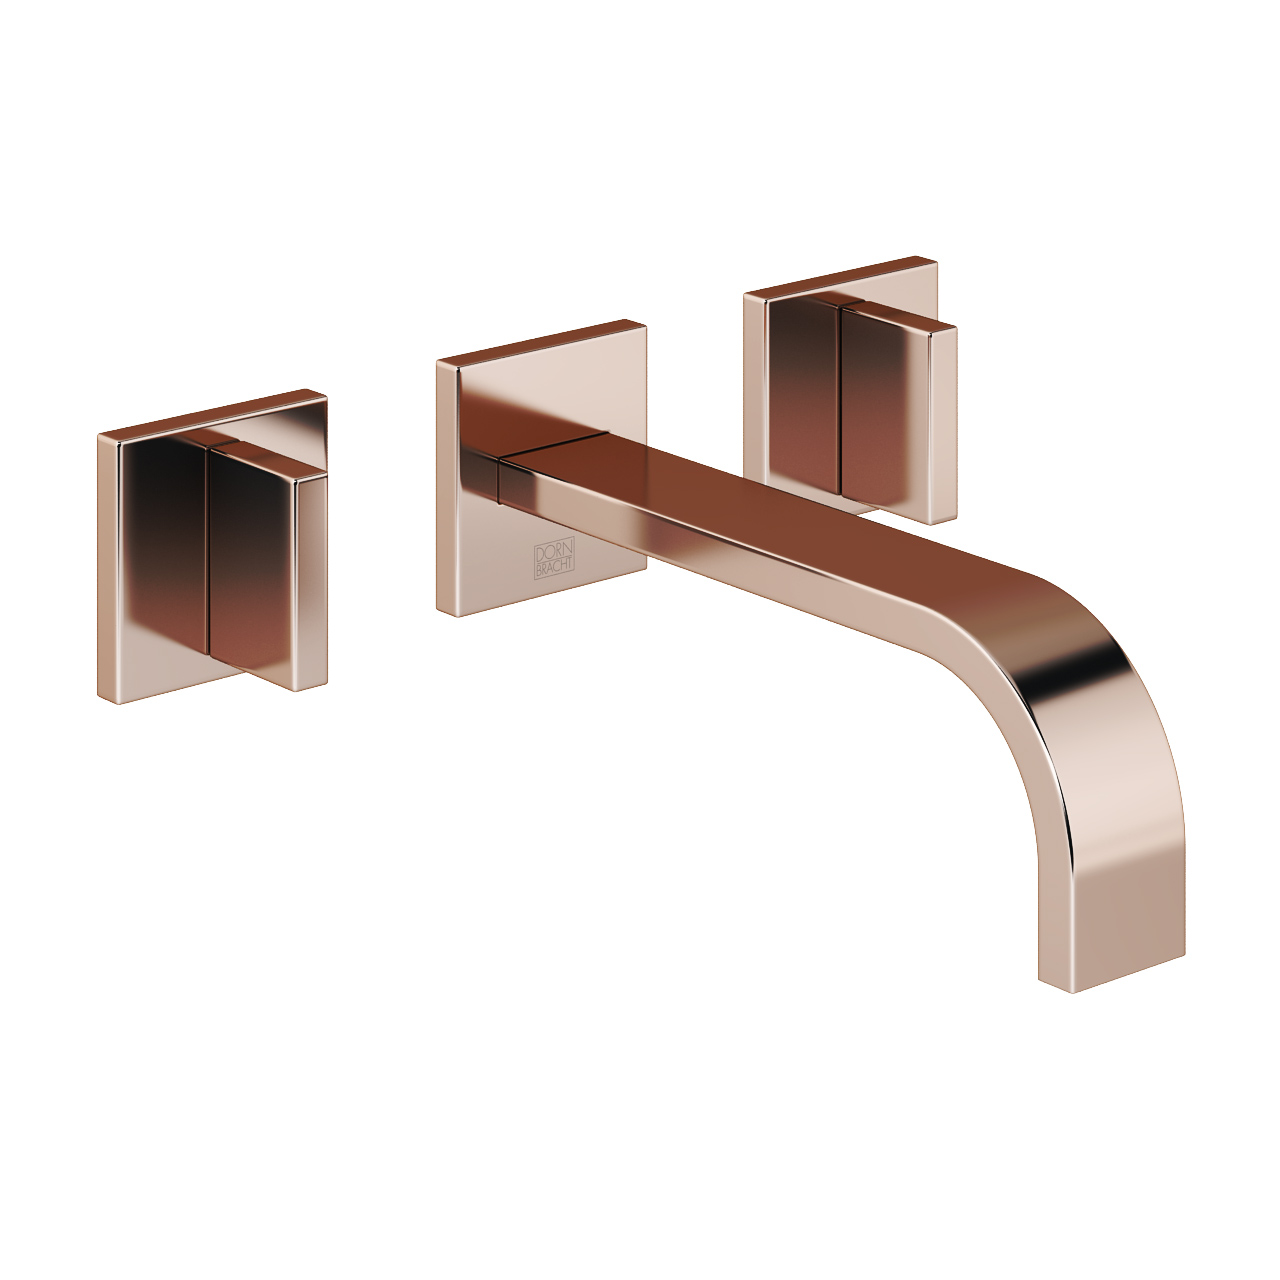 Mem Wall Mounted Three Hole Basin Mixer by DornBracht